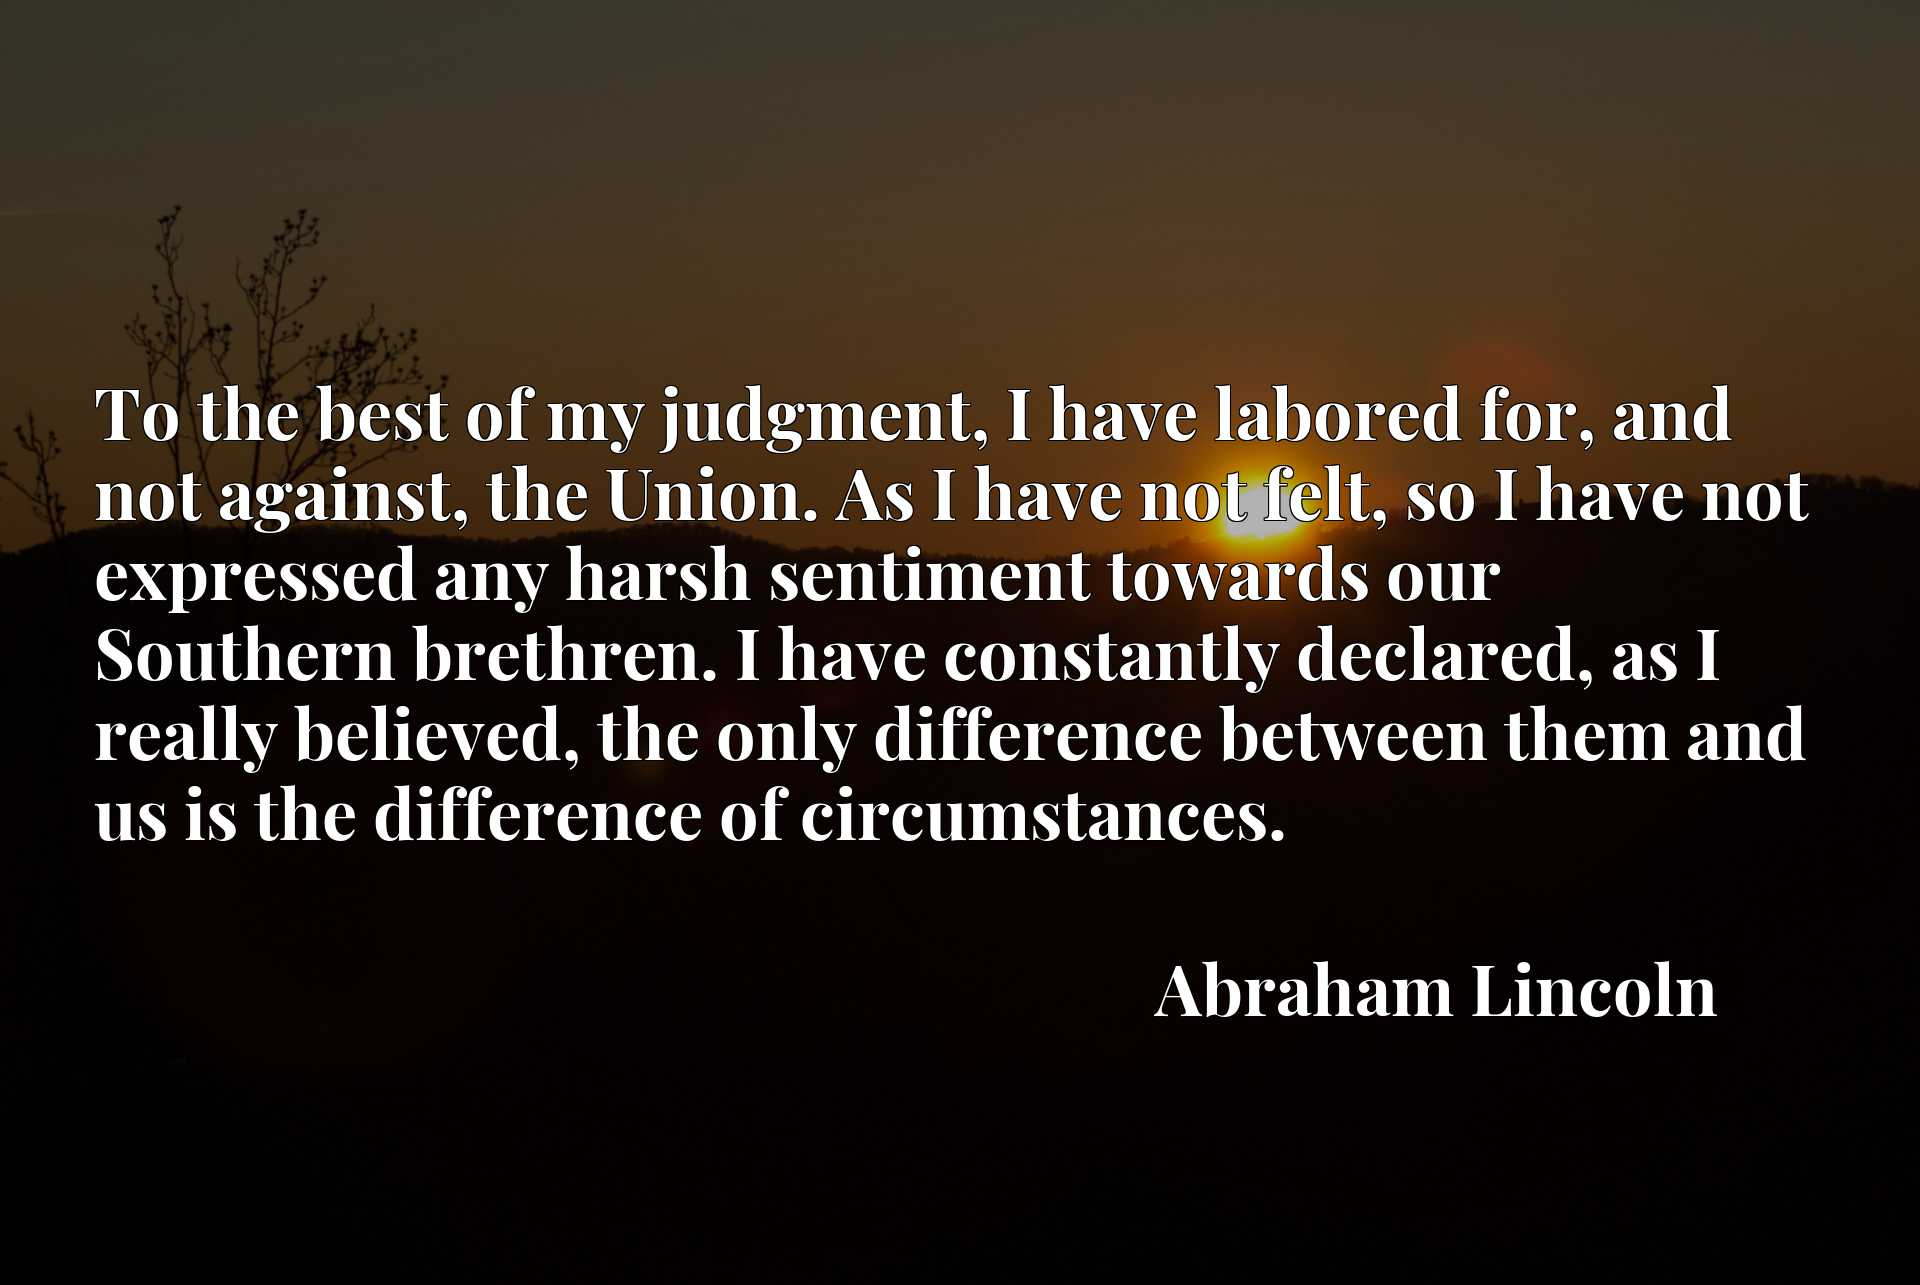 To the best of my judgment, I have labored for, and not against, the Union. As I have not felt, so I have not expressed any harsh sentiment towards our Southern brethren. I have constantly declared, as I really believed, the only difference between them and us is the difference of circumstances.